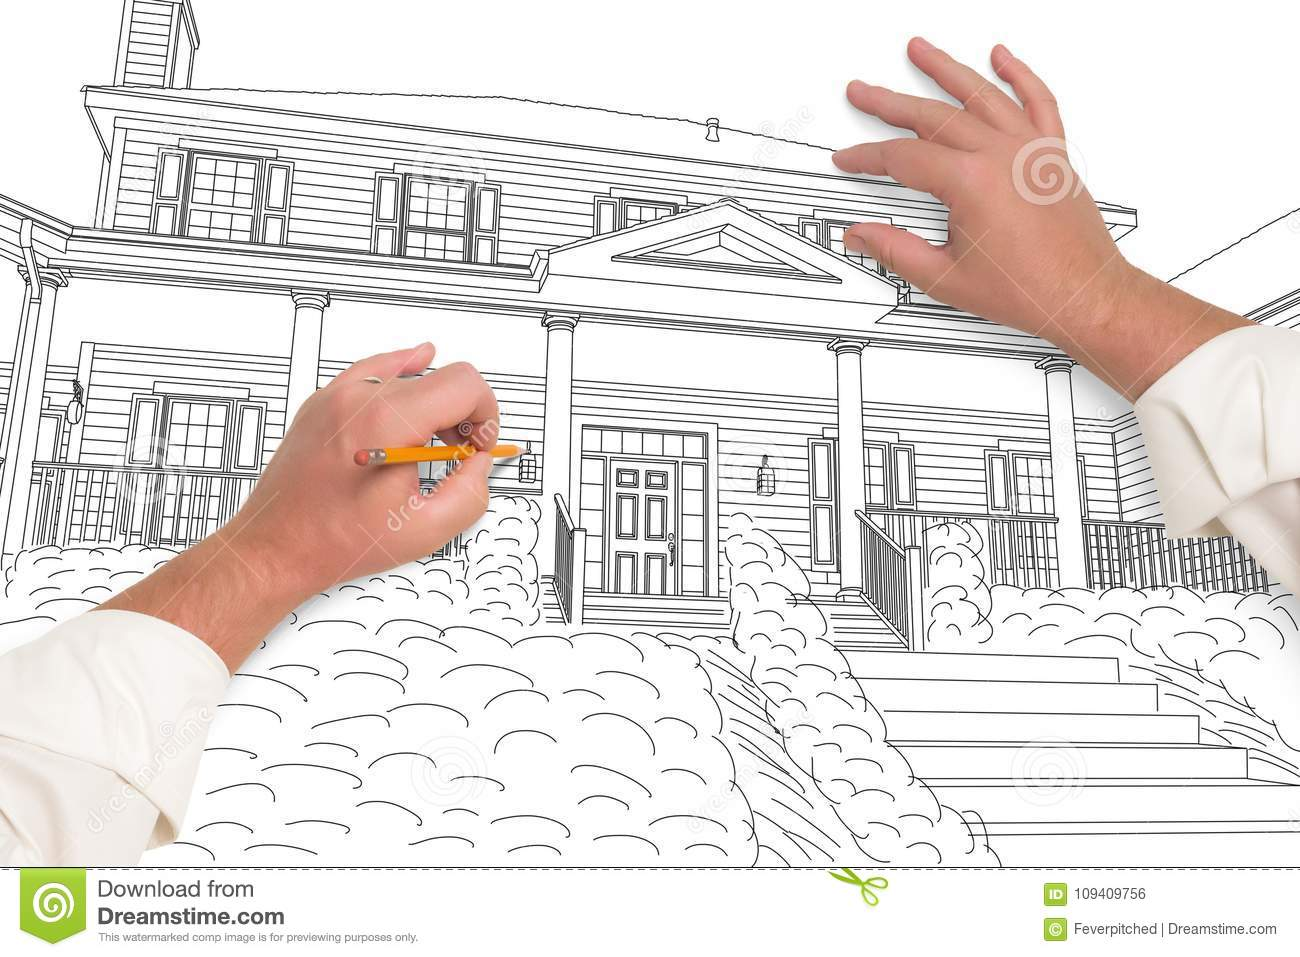 Male Hands Sketching with Pencil a Beautiful House